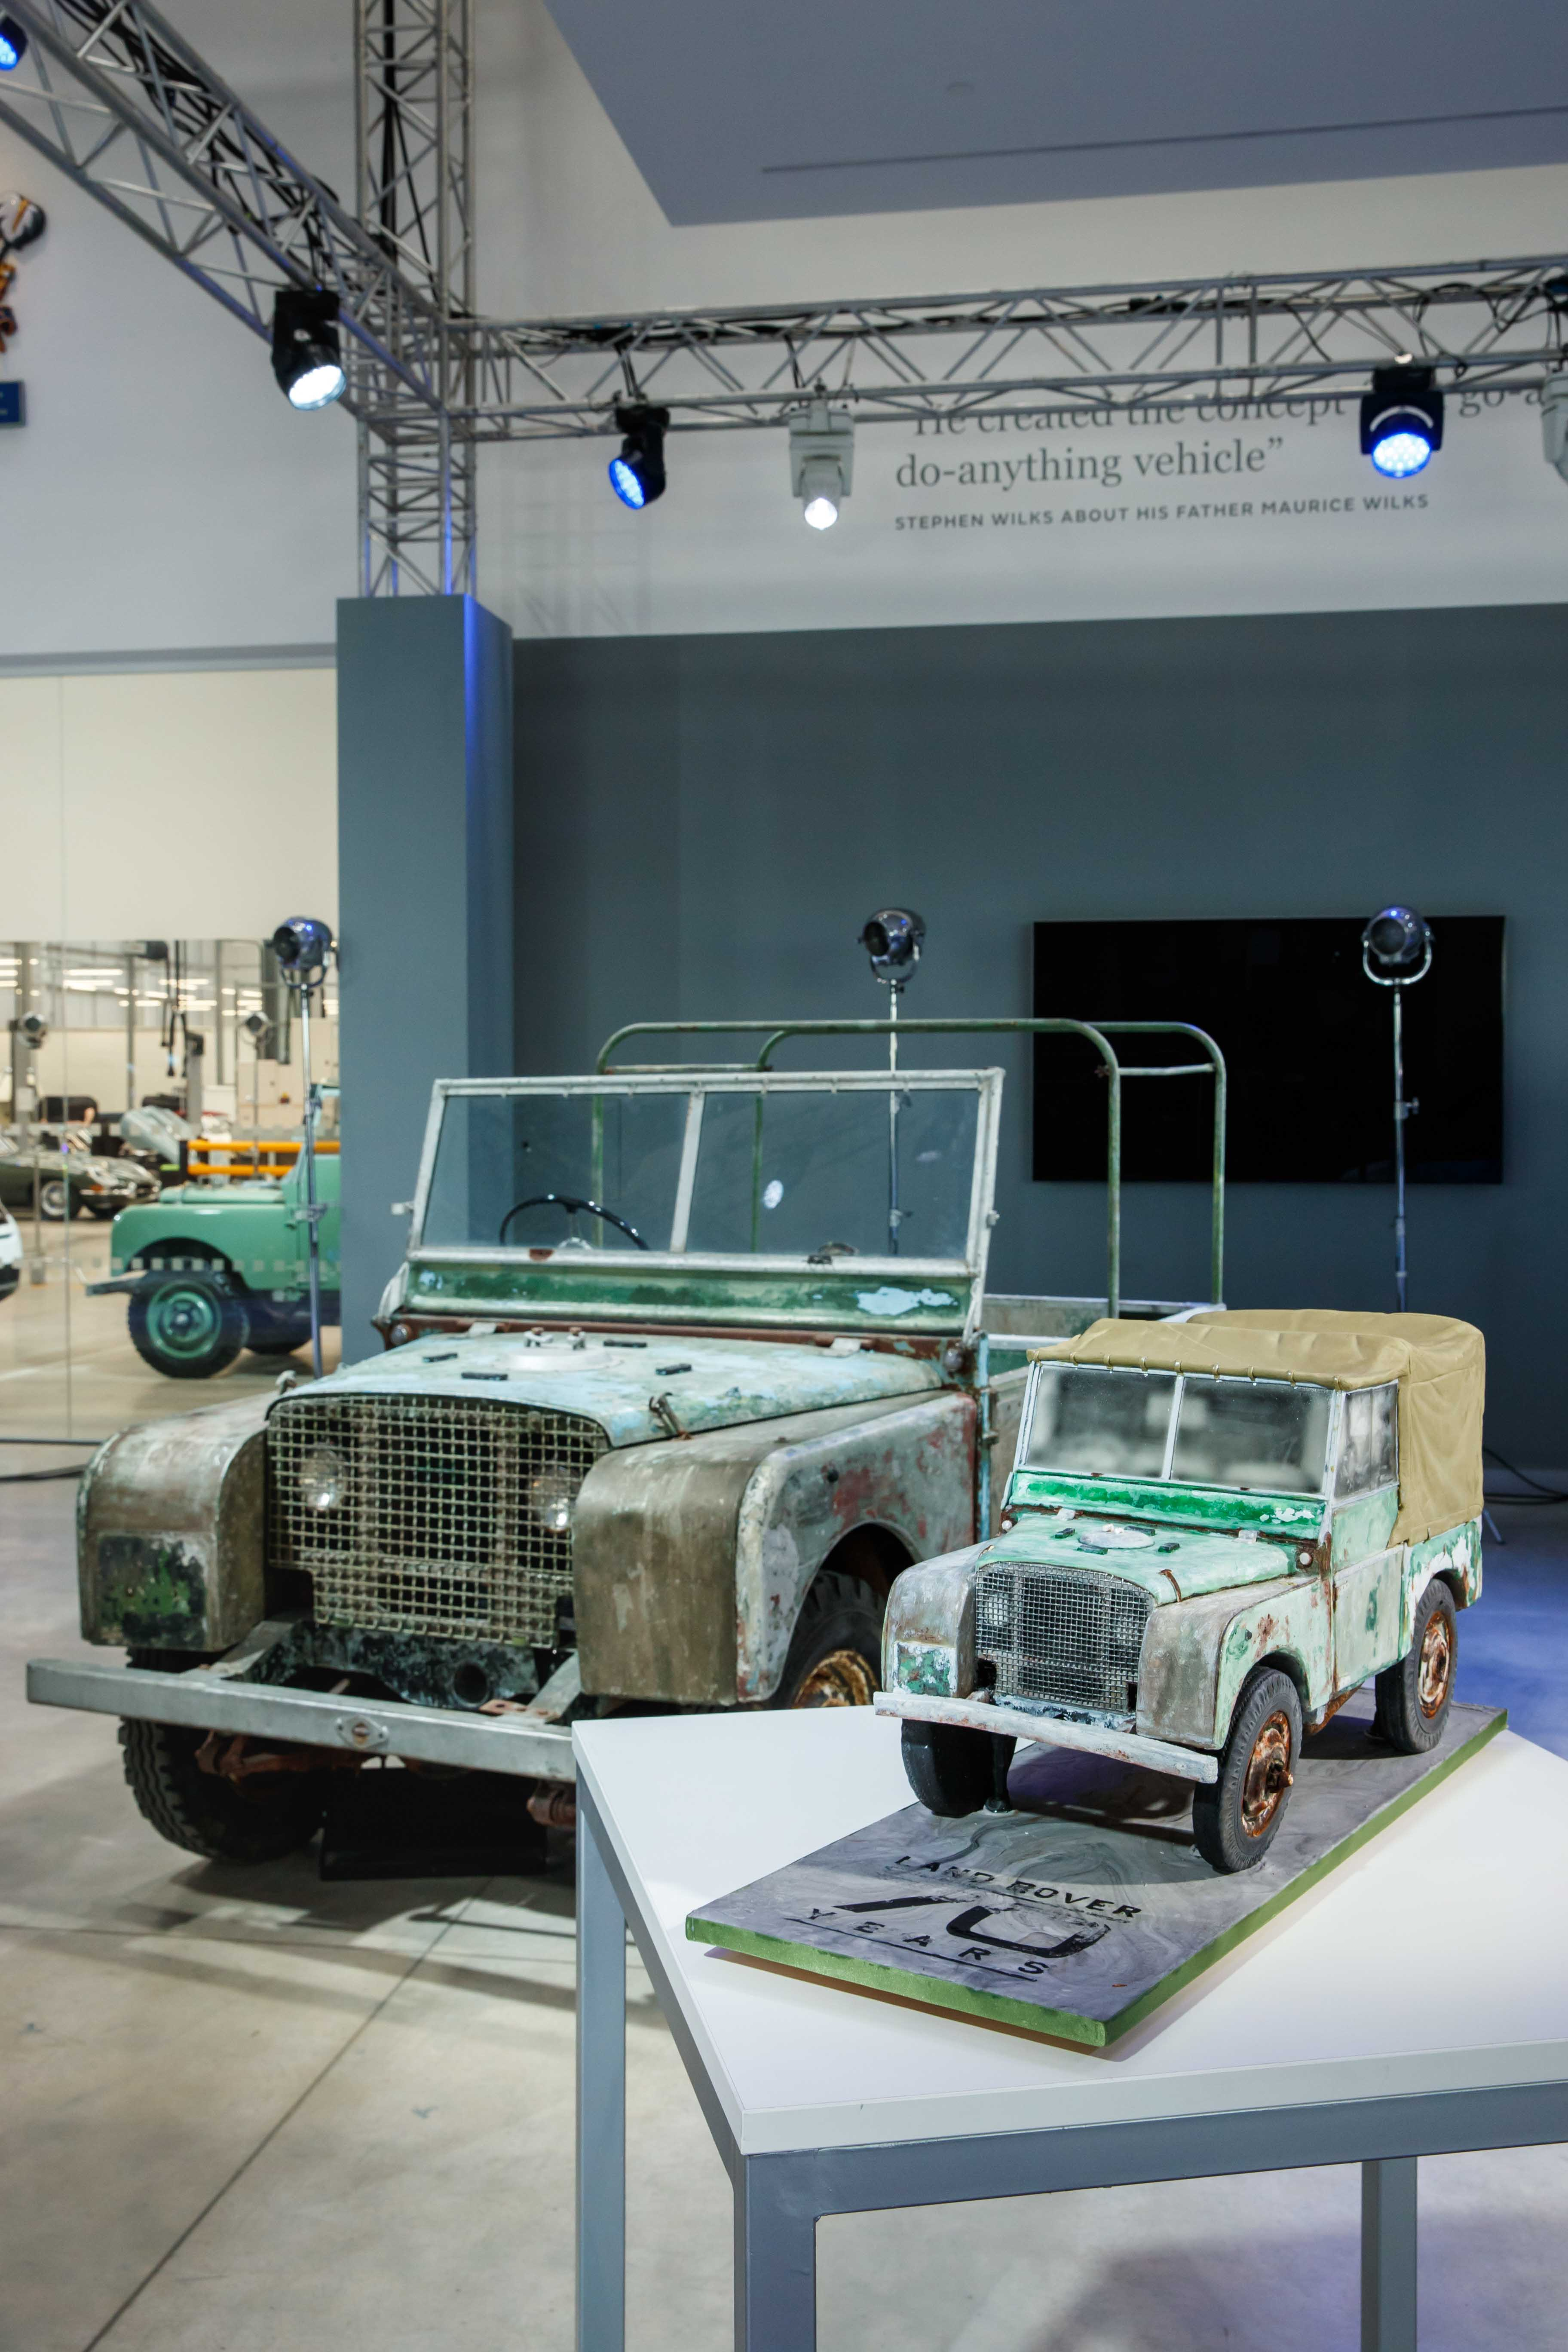 Land Rover prototype and scale model mockup together for the Land Rover 70th Anniversary